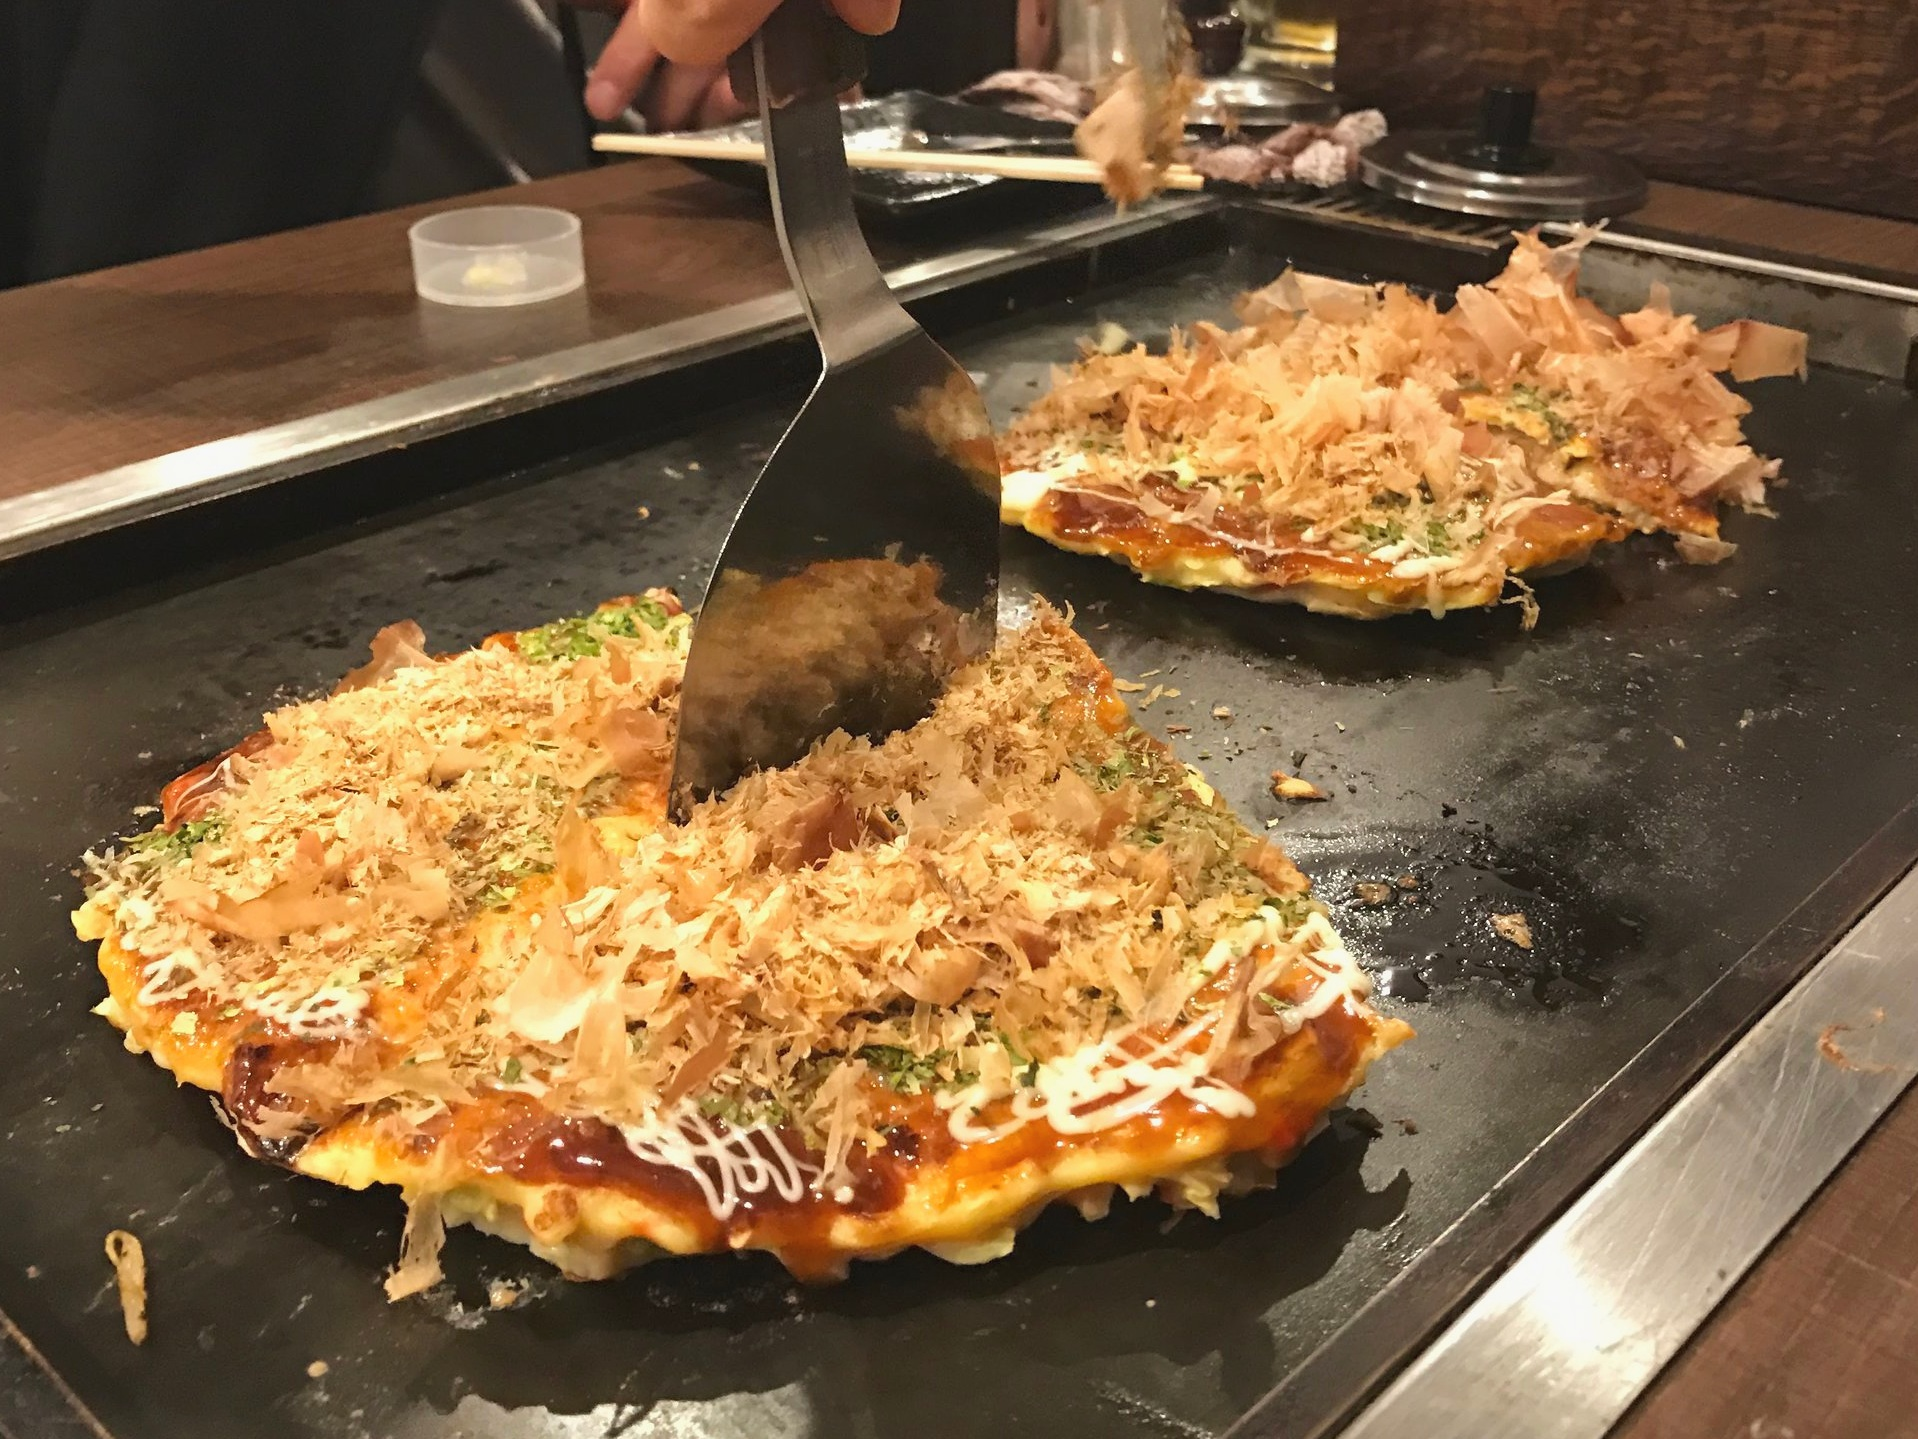 Cook Your Own Okonomiyaki - Cutting and Serving Okonomiyaki